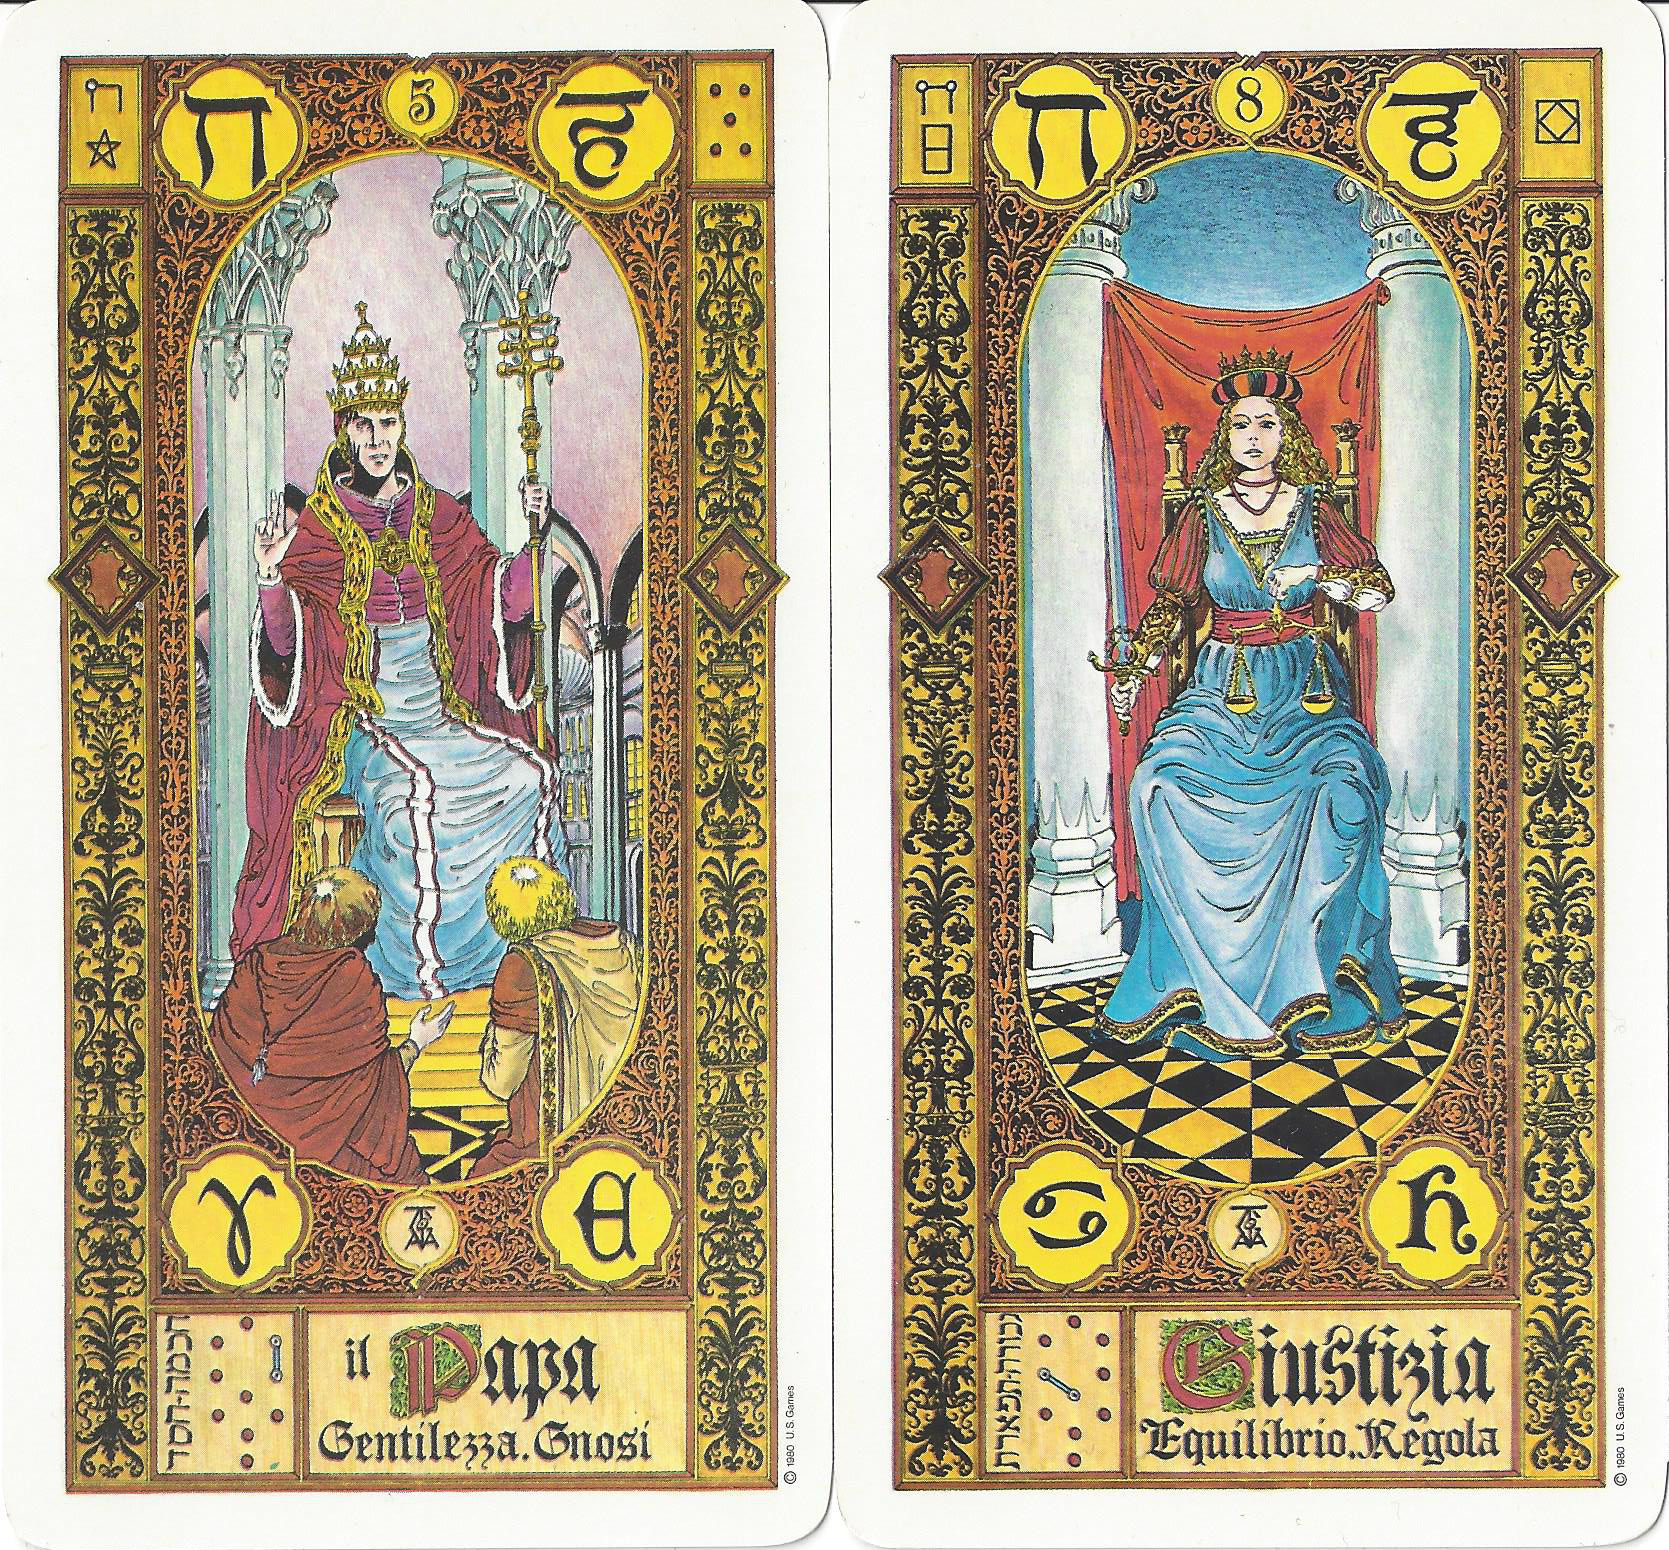 """Il Papa"" and ""Giustizia"" from The Stairs of Gold Tarot by Georgio Tavaglione, published by U.S. Games Systems, Inc., 1979. This deck features the astrological and qabalistic correspondences in the French system. Both cards show the Hebrew letter cheth, but Il Papa, using this system of correspondences, should show heh."